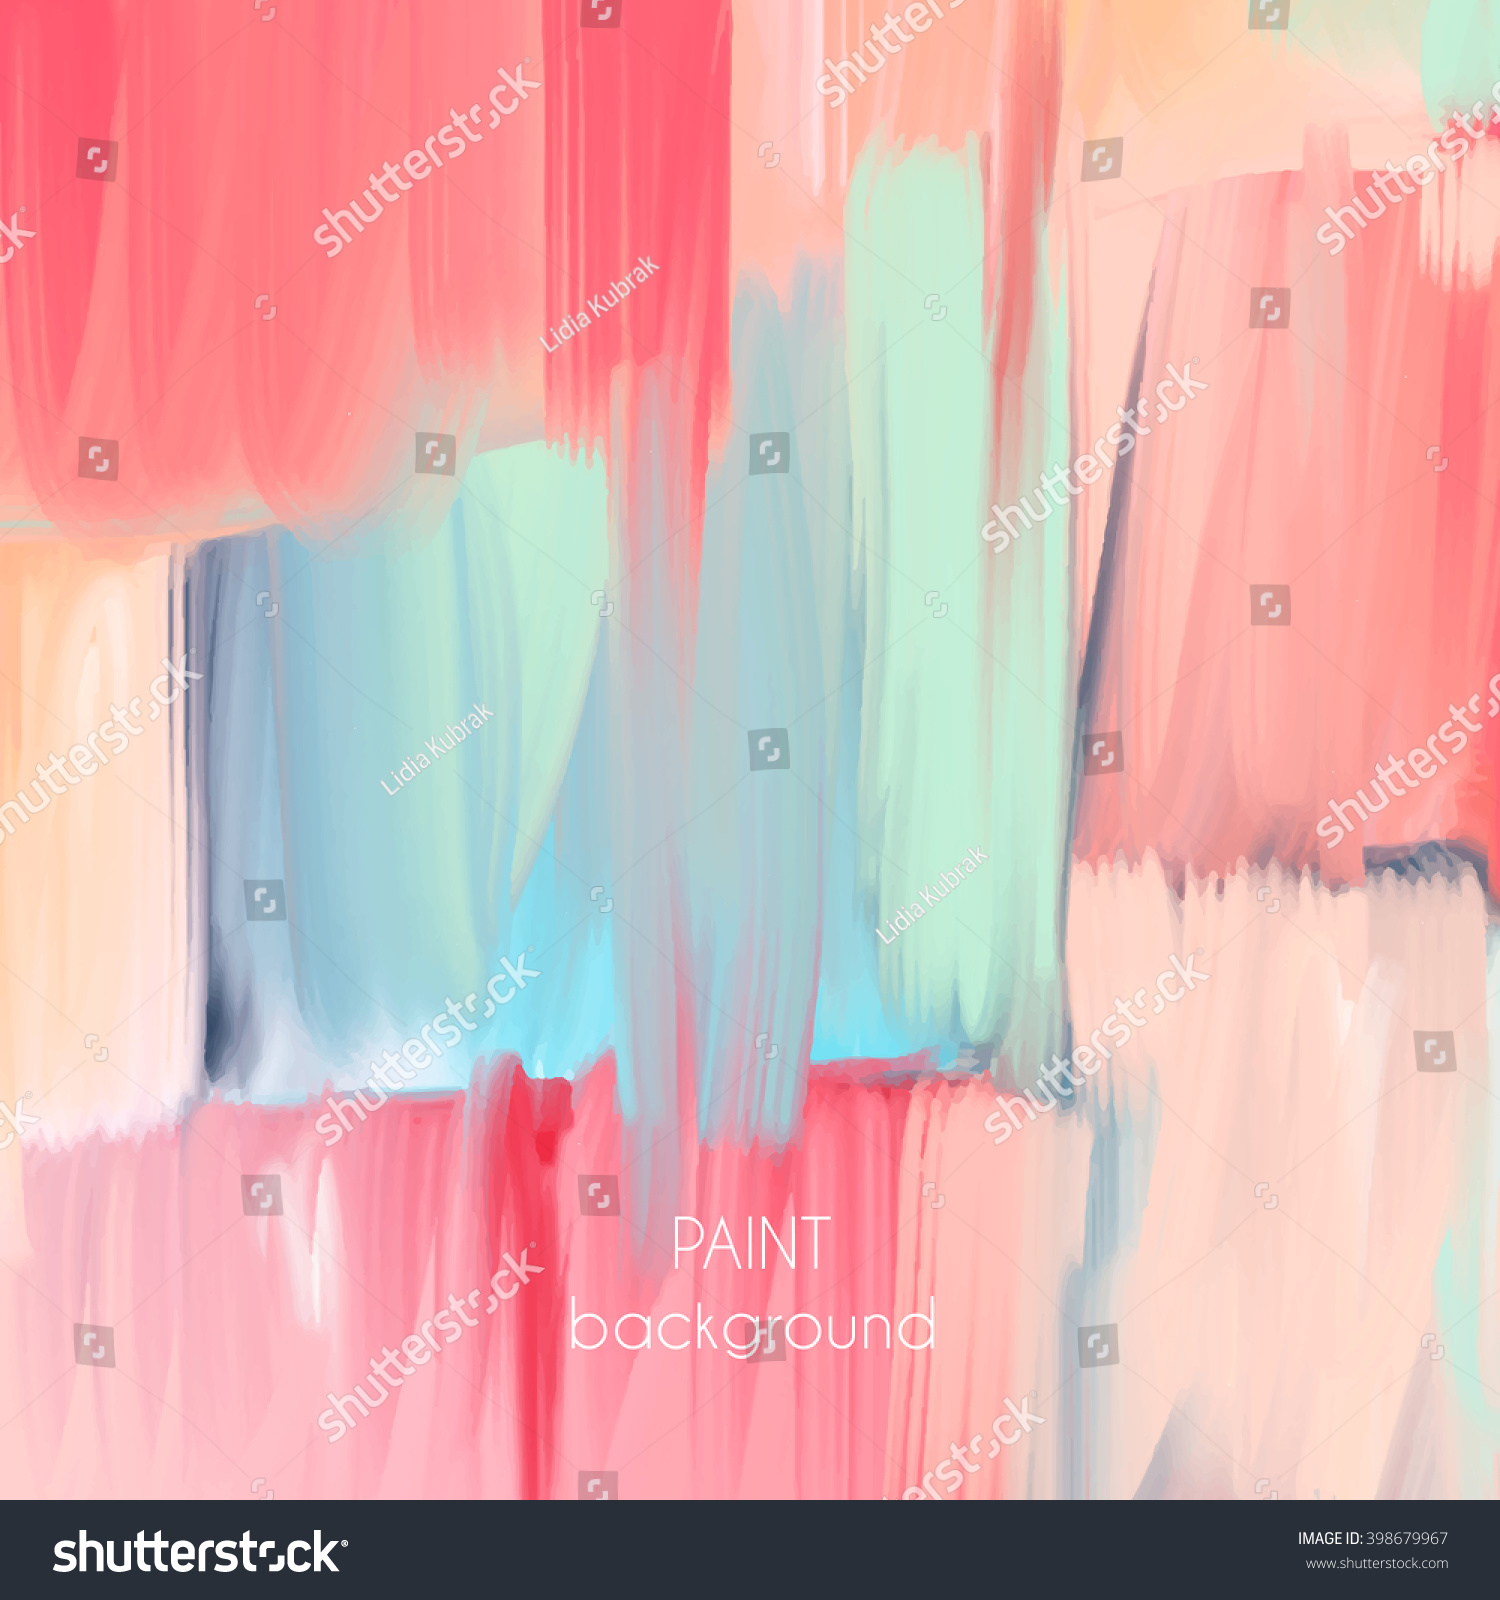 Pastel Tone Good Color To Paint A Kitchen: Abstract Oil Painting Texture Hand Drawn Stock Vector